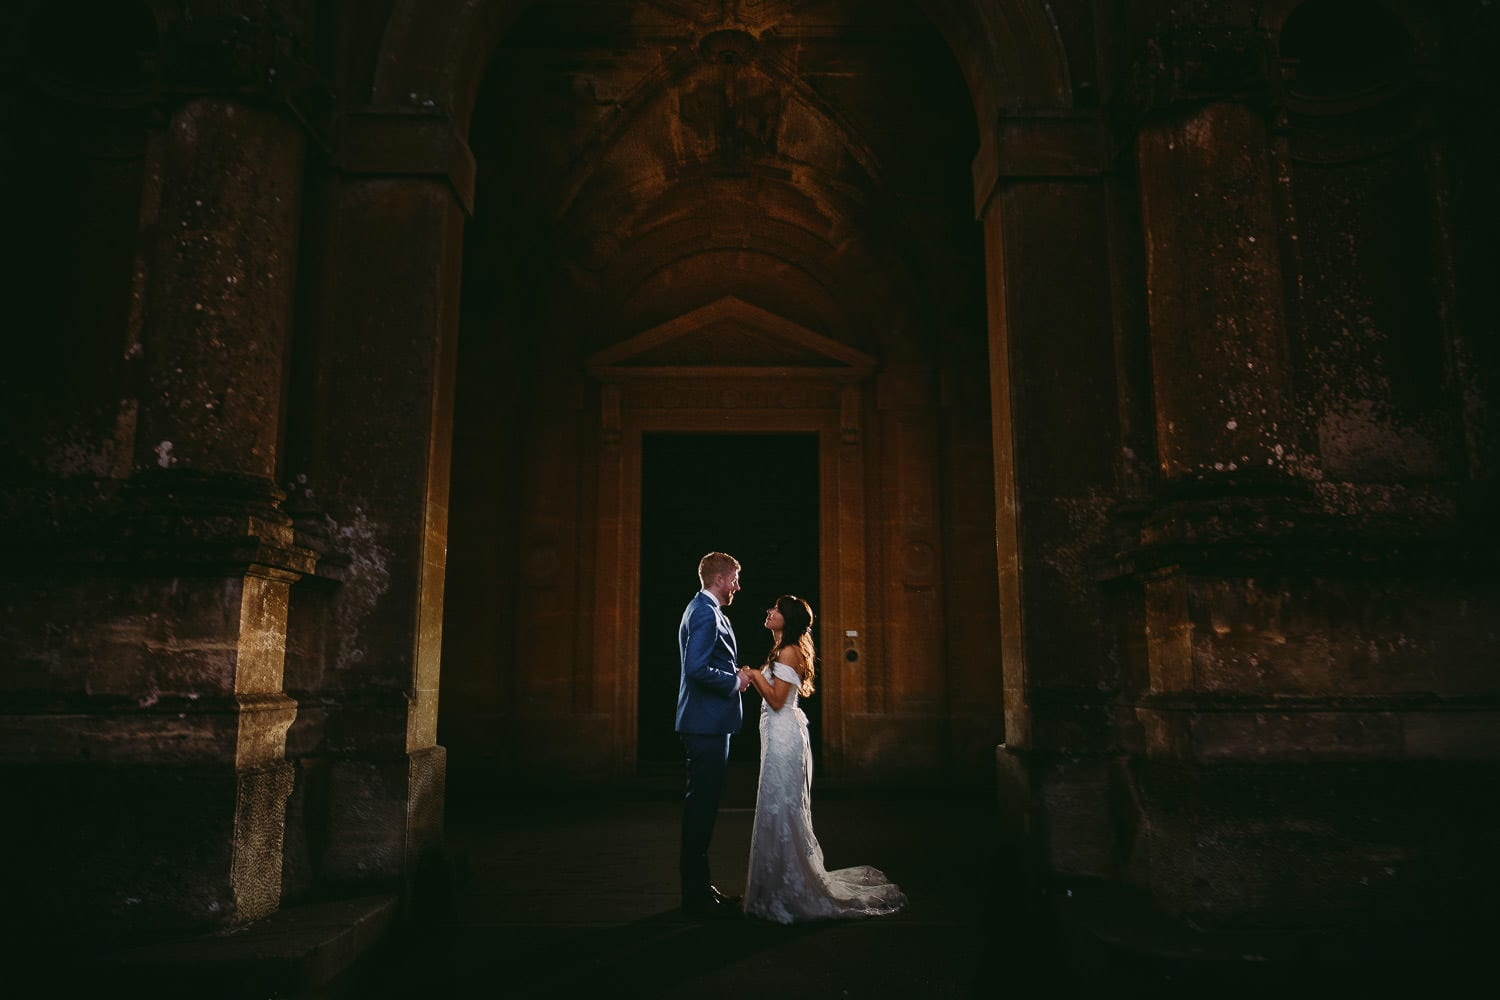 A portrait of the bride and groom in the grand entrance at Westonbirt House